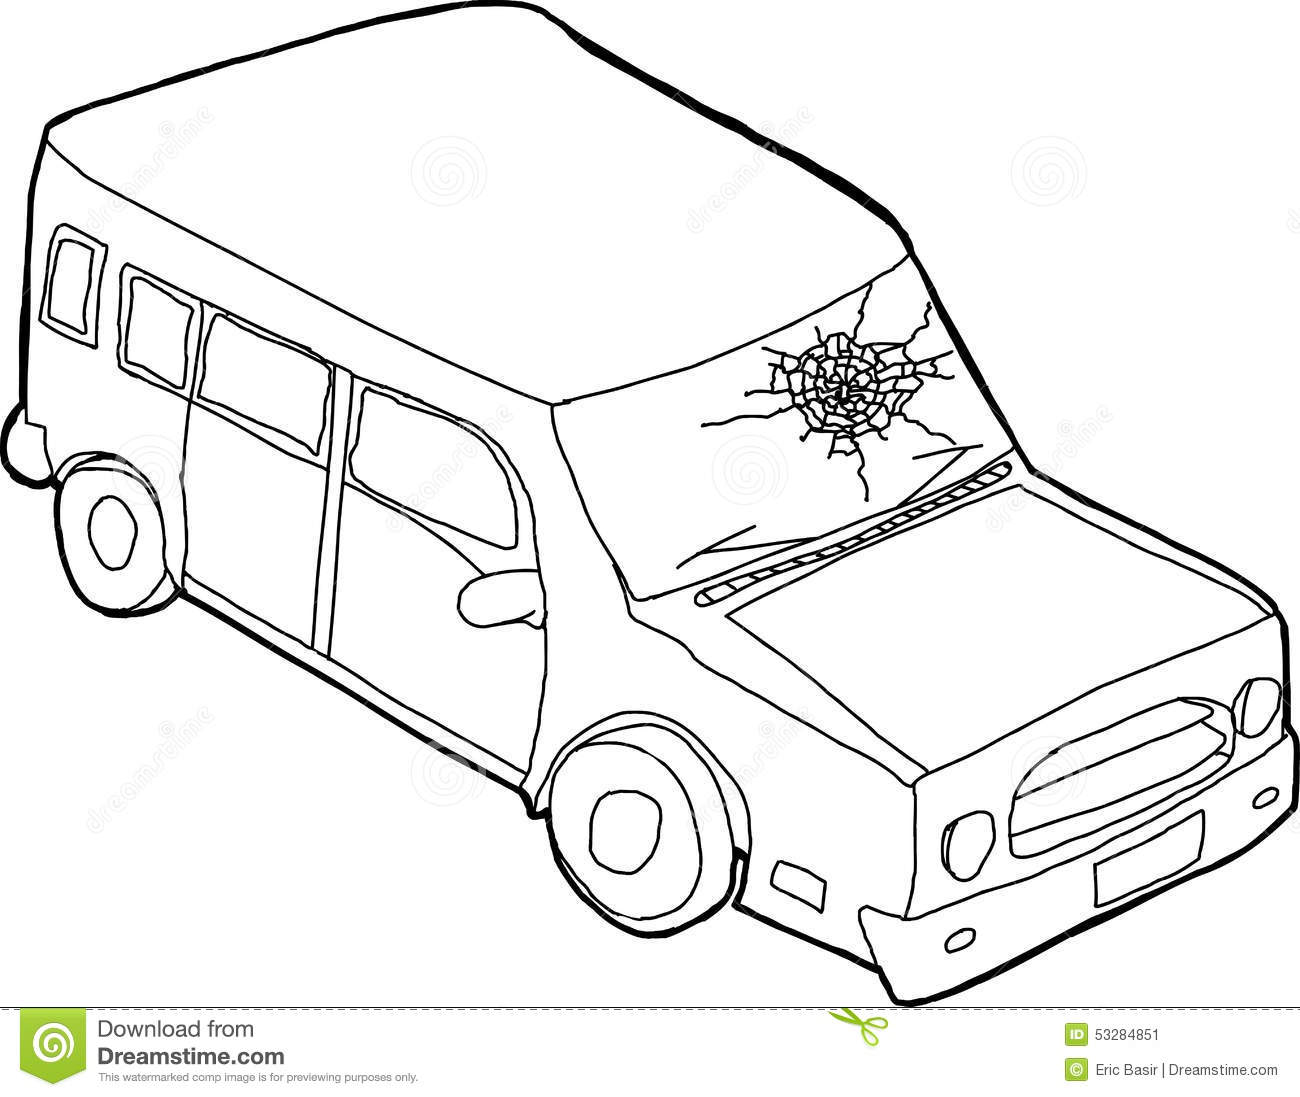 Outline Of Car With Fractured Window Stock Illustration